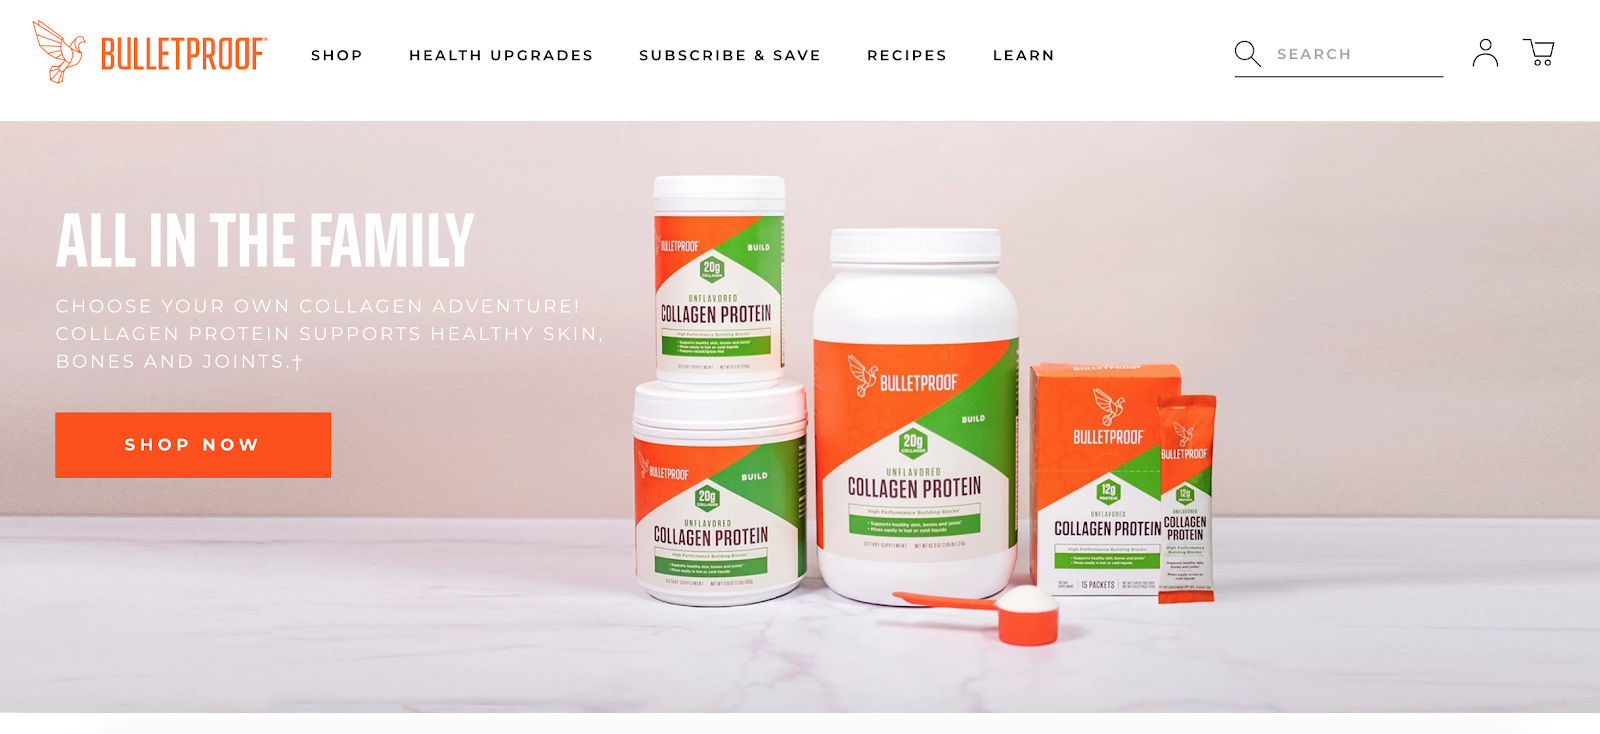 Bulletproof homepage with Bulletproof collagen protein in the background